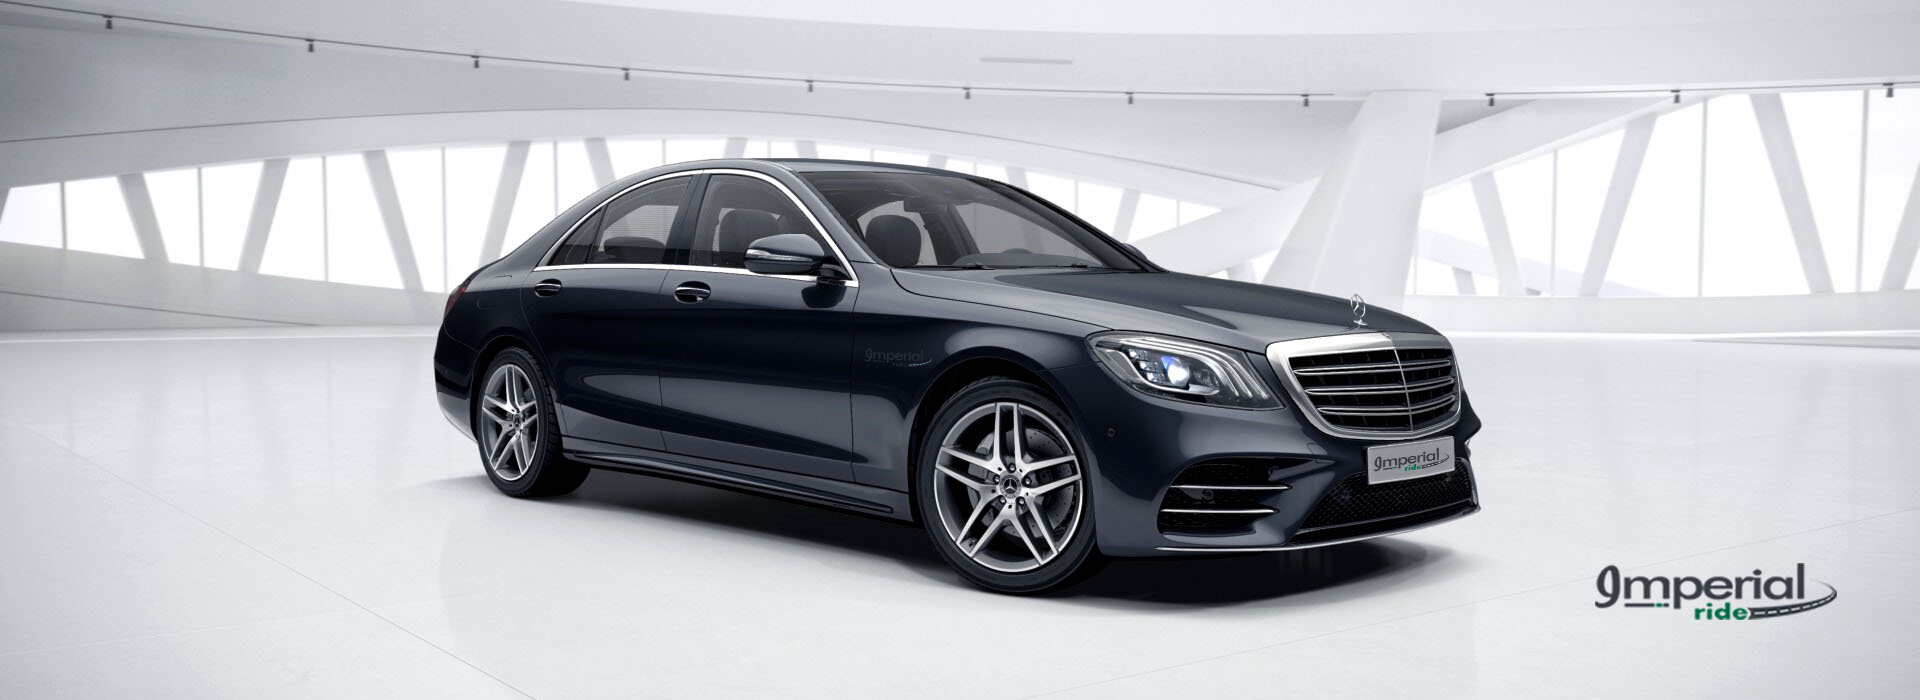 Mercedes S Class Chauffeur Driven Car Hire Service